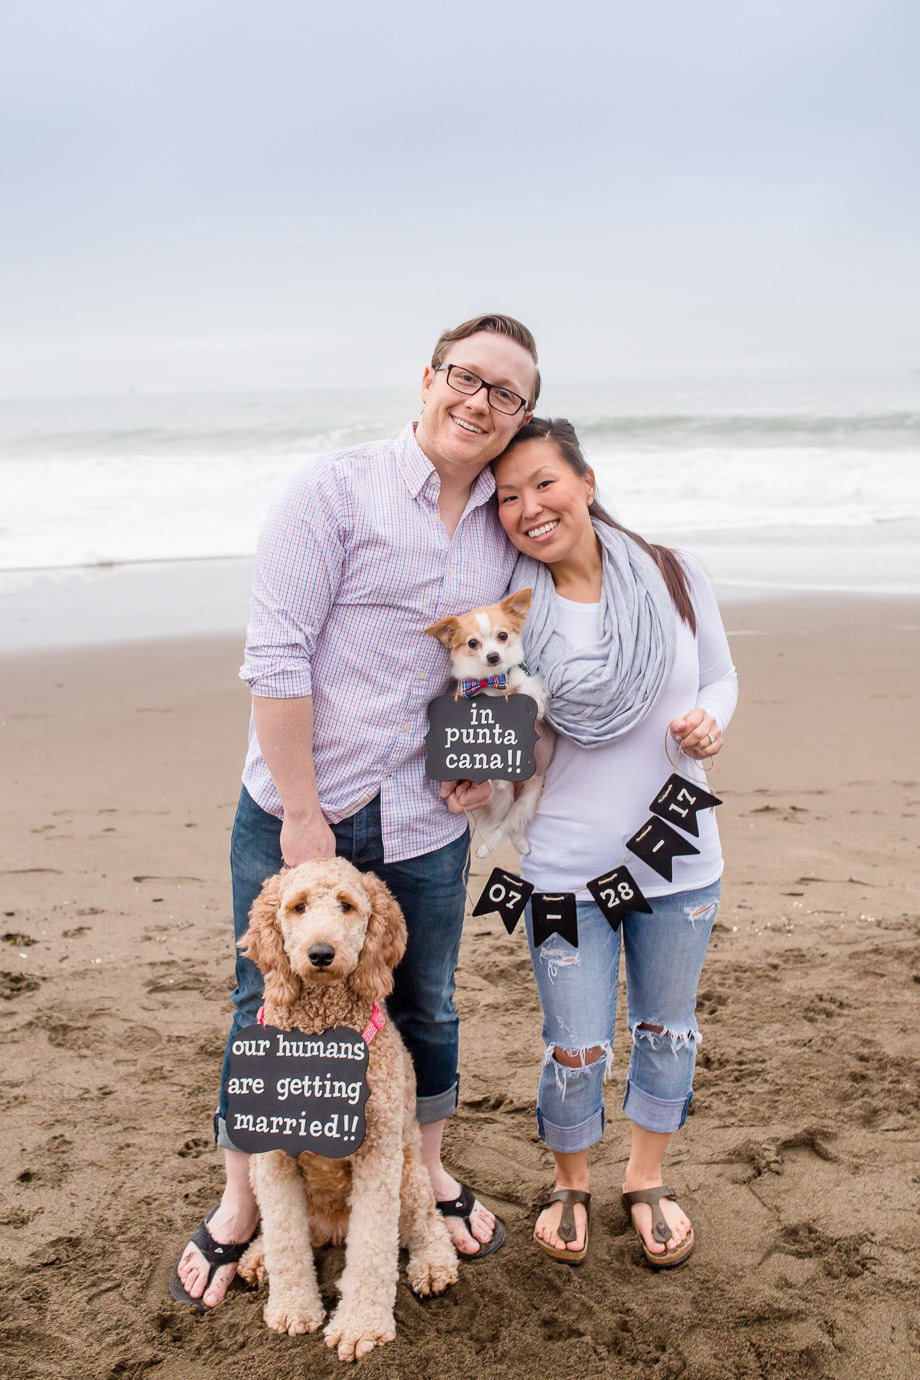 cute save the date photo at baker beach with two puppies